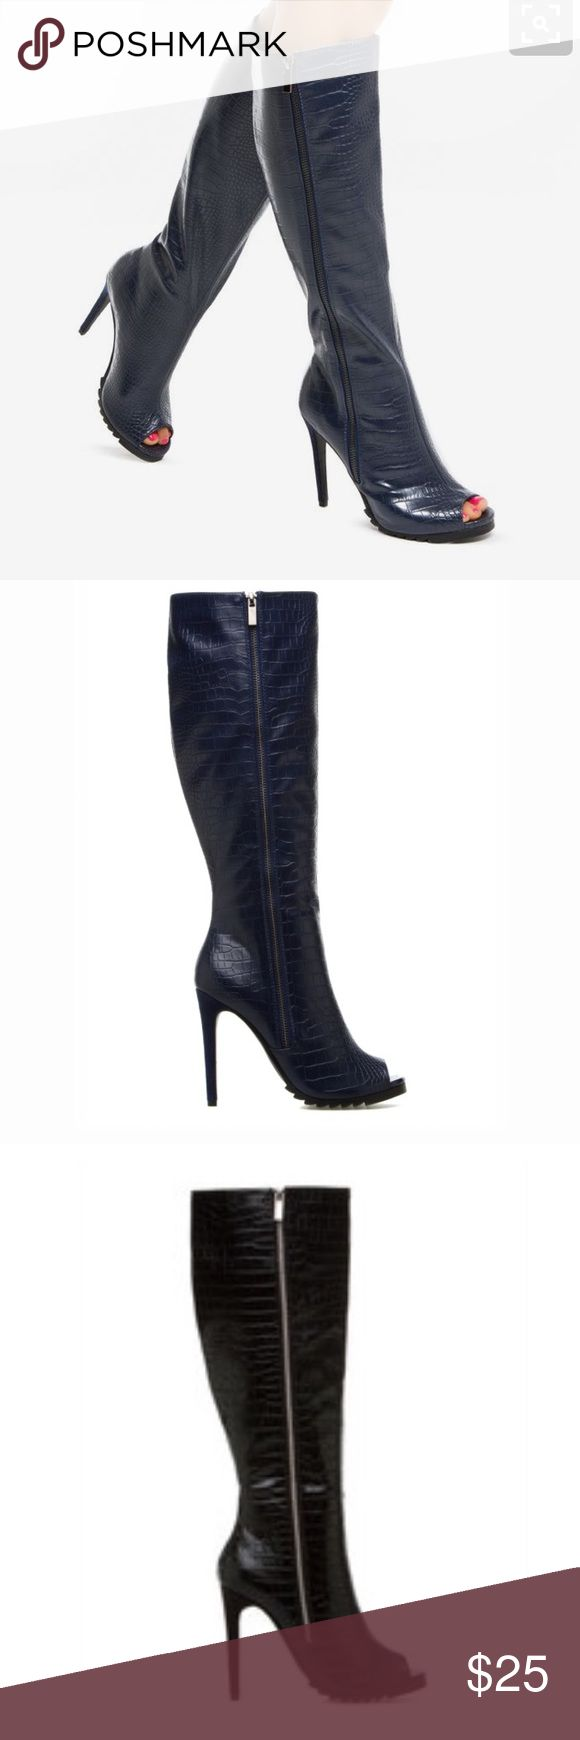 Shoedazzle Meliana open toe boots Brand new in box! Crocodile pattern and absolutely stunning! Shoe Dazzle Shoes Heeled Boots